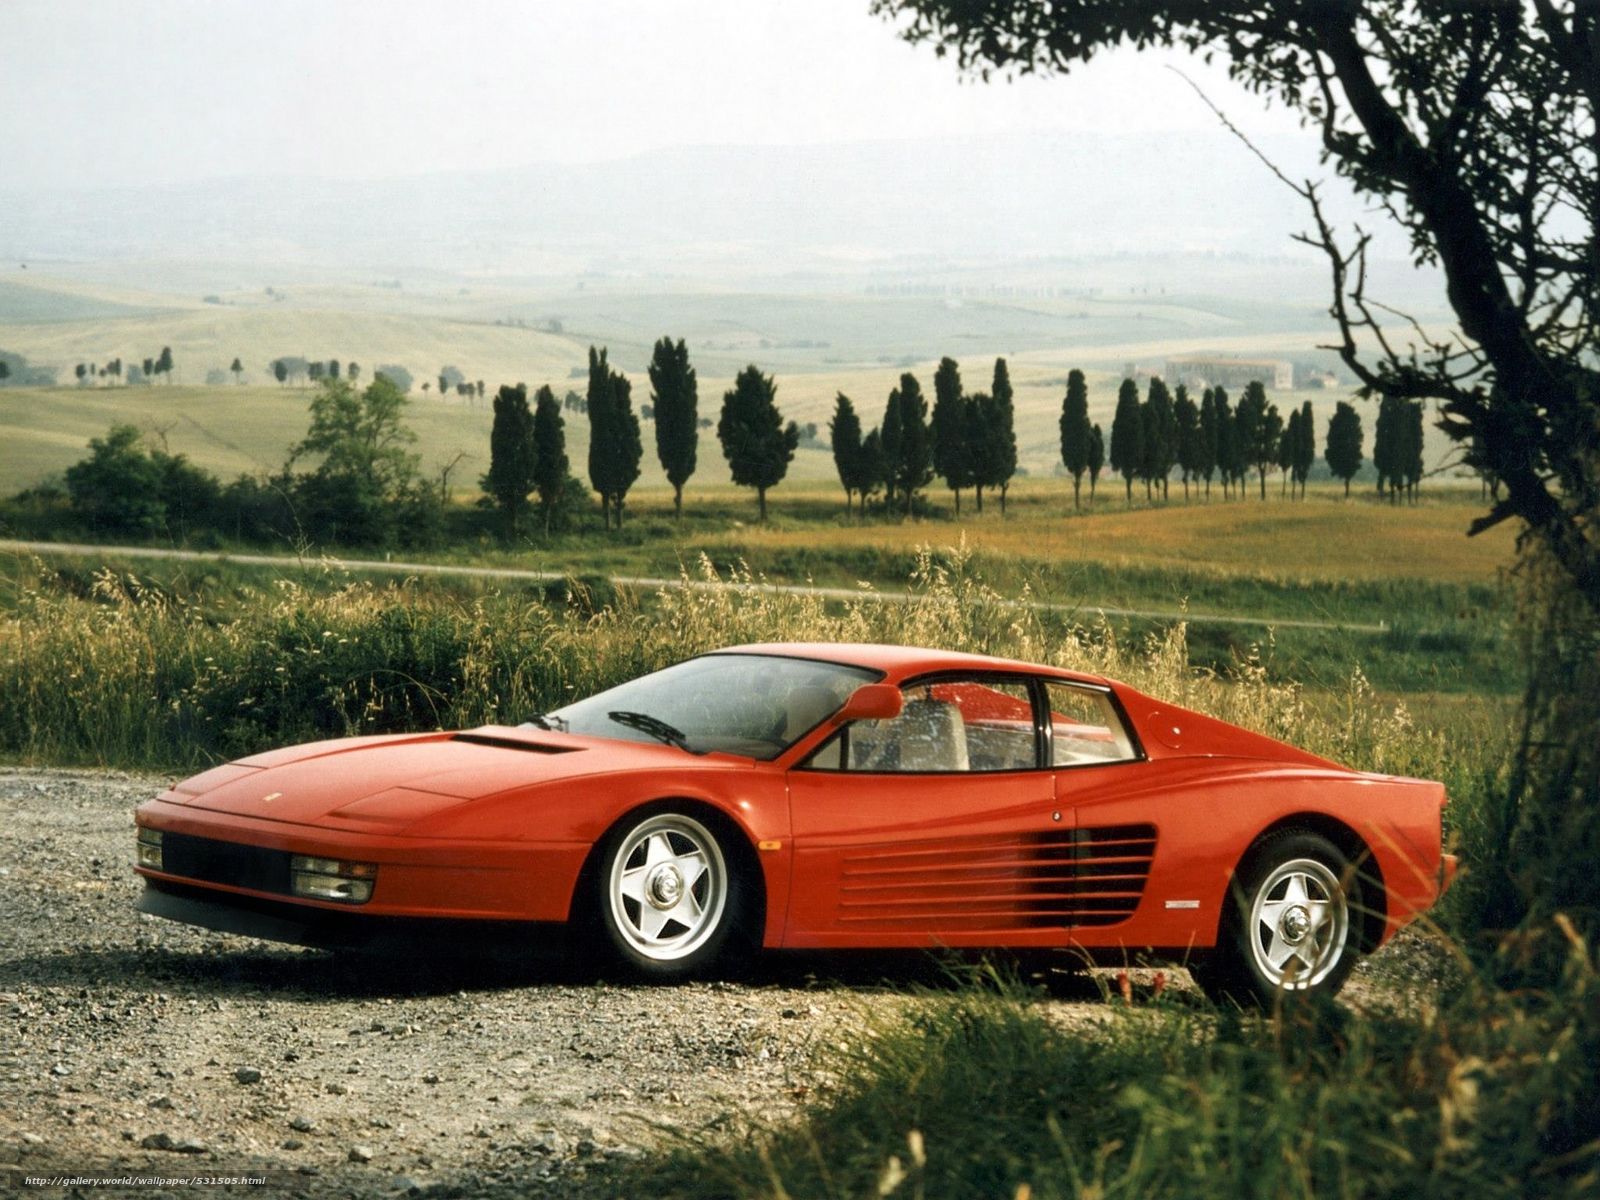 1985 ferrari testarossa wallpaper - photo #19